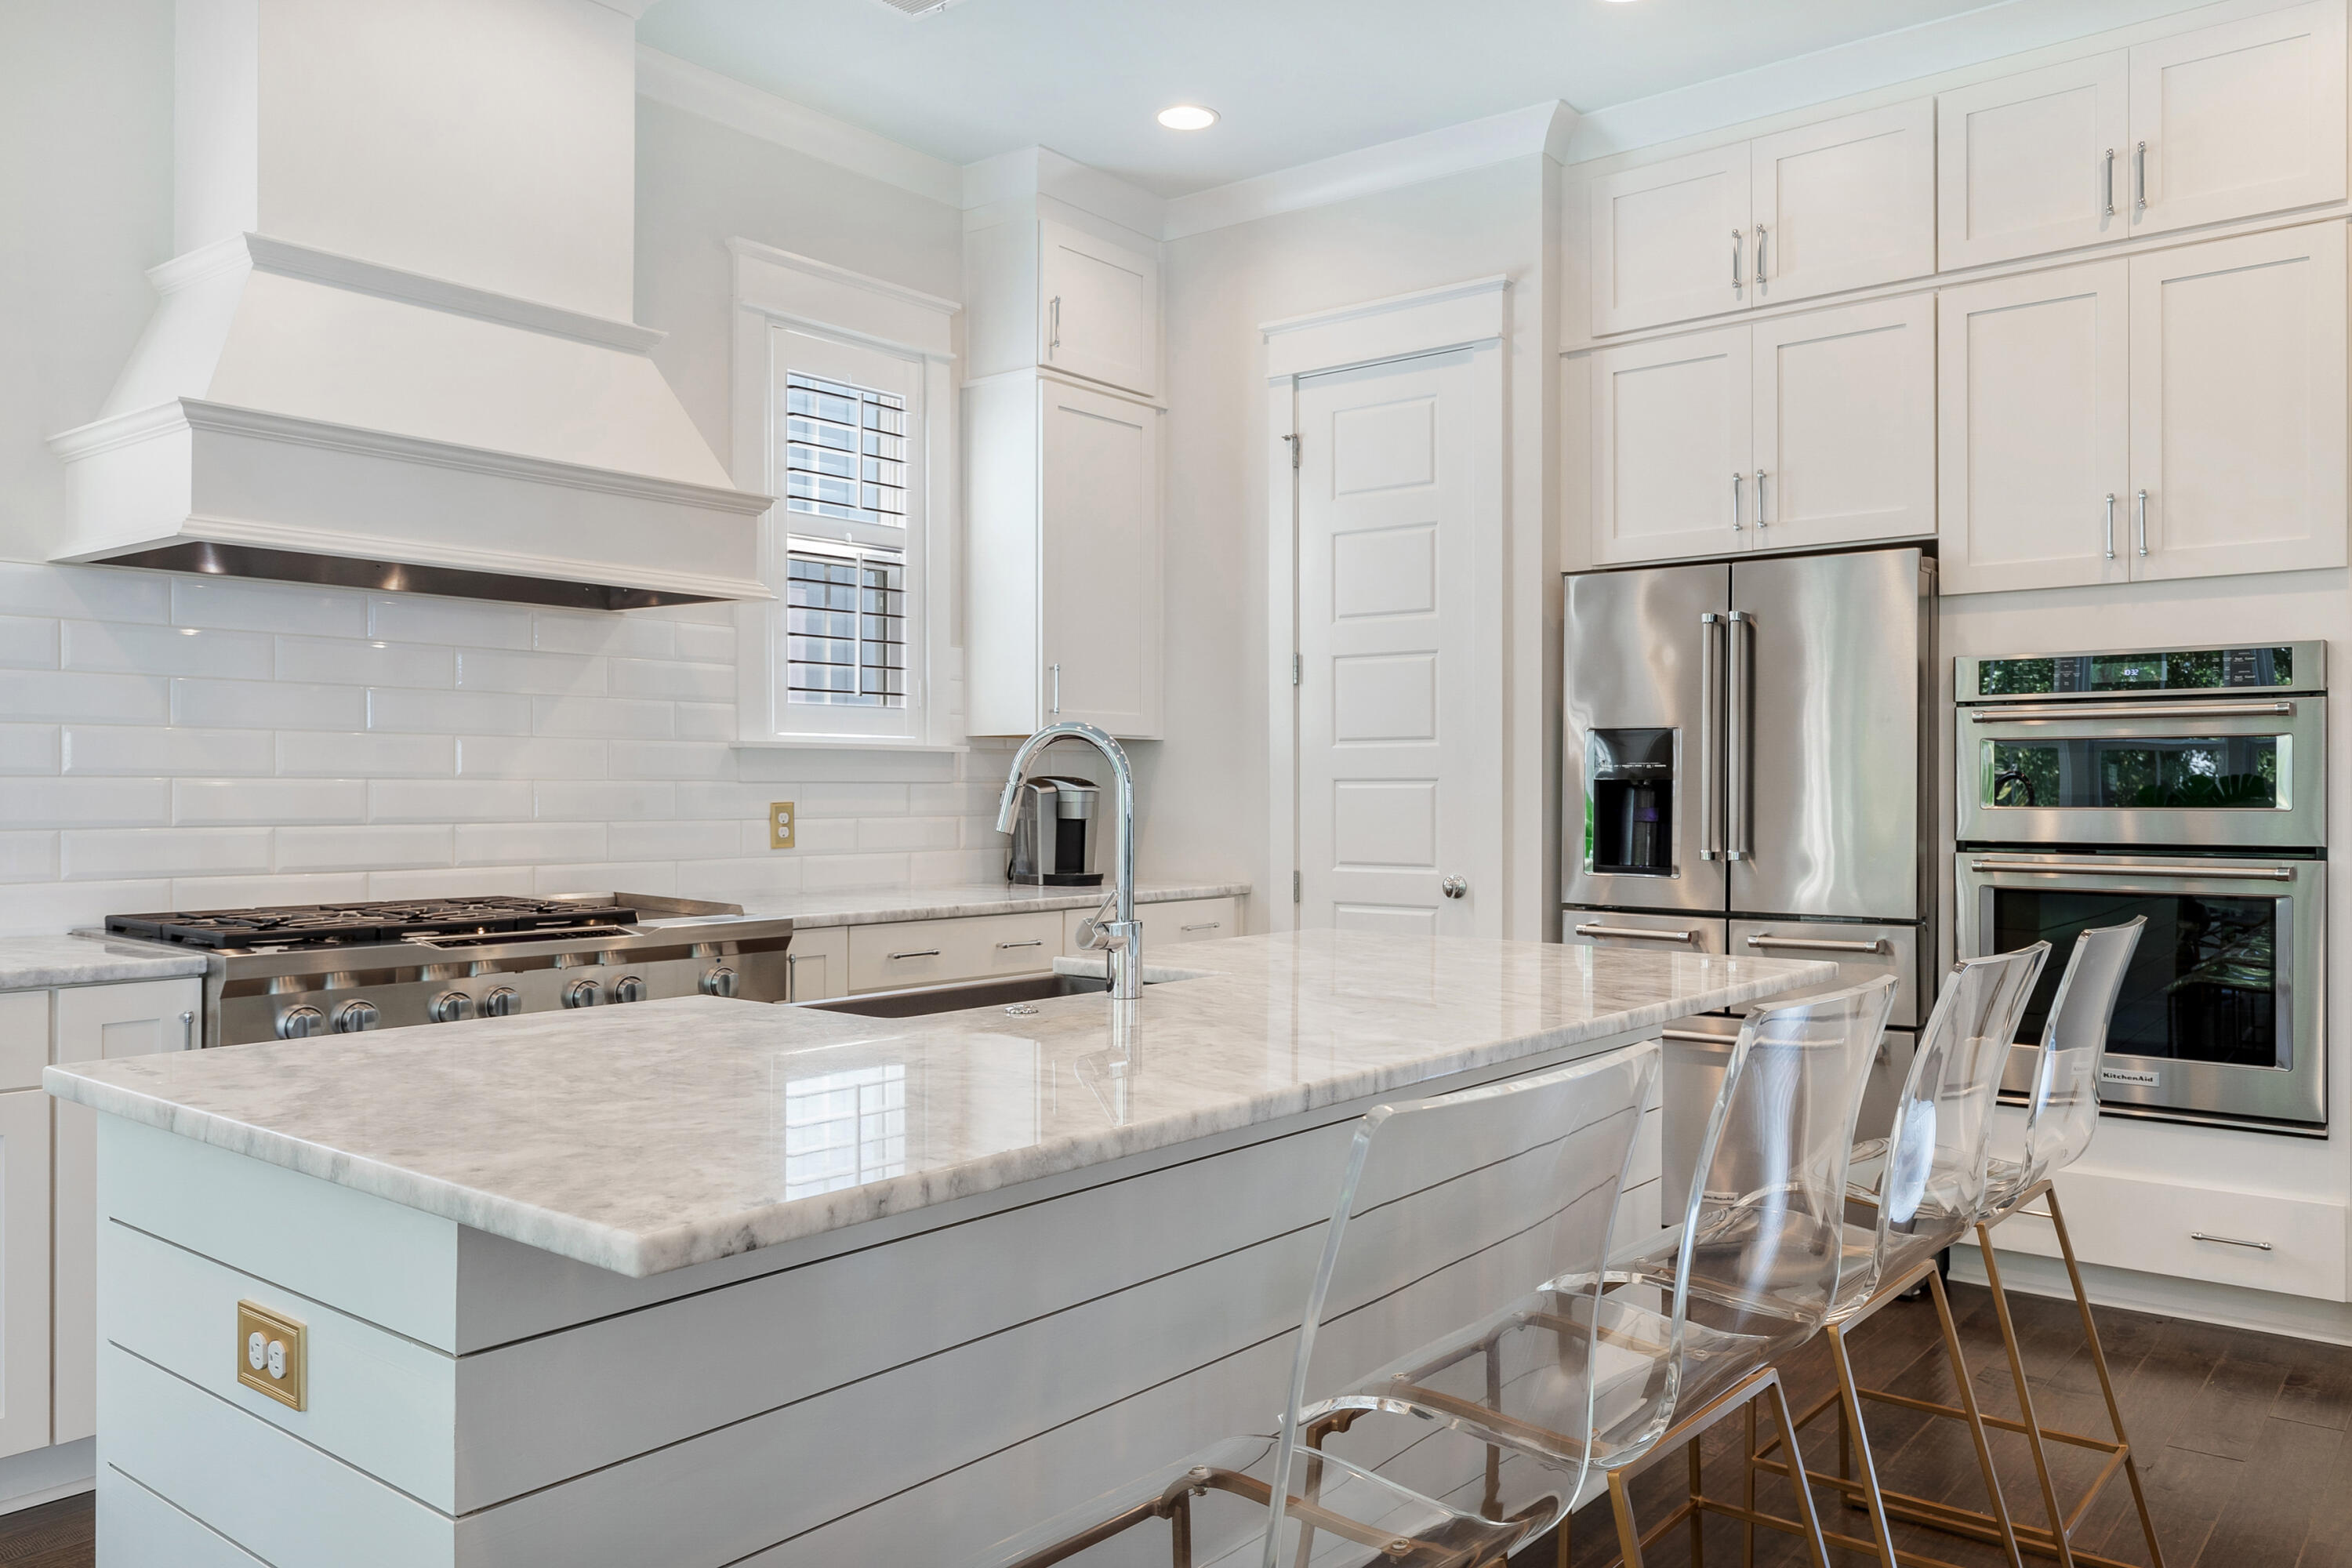 Stratton by the Sound Homes For Sale - 1517 Menhaden, Mount Pleasant, SC - 17